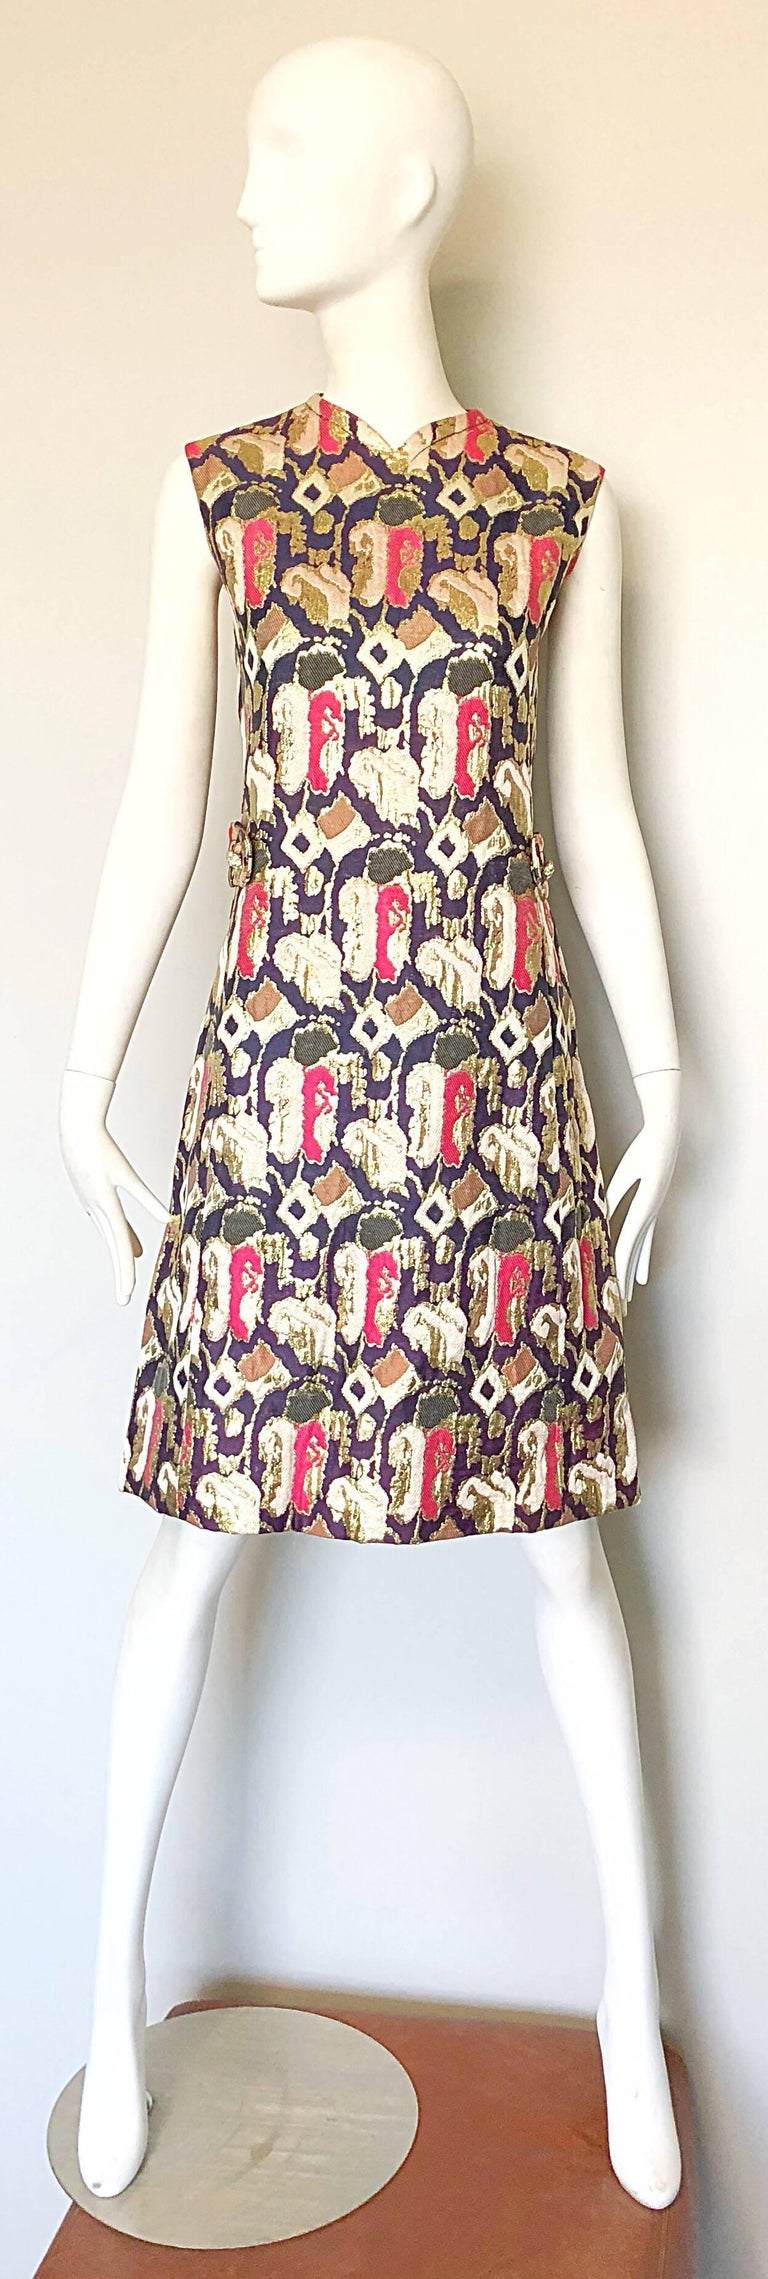 Fabulous 1960s OSCAR DE LA RENTA silk brocade A Line dress and coat ensemble! Features lovely abstract prints in gold, purple and pink. Jacket features a sharp tailored bodice with a slightly flared body. Pockets at each side of the hips. Double